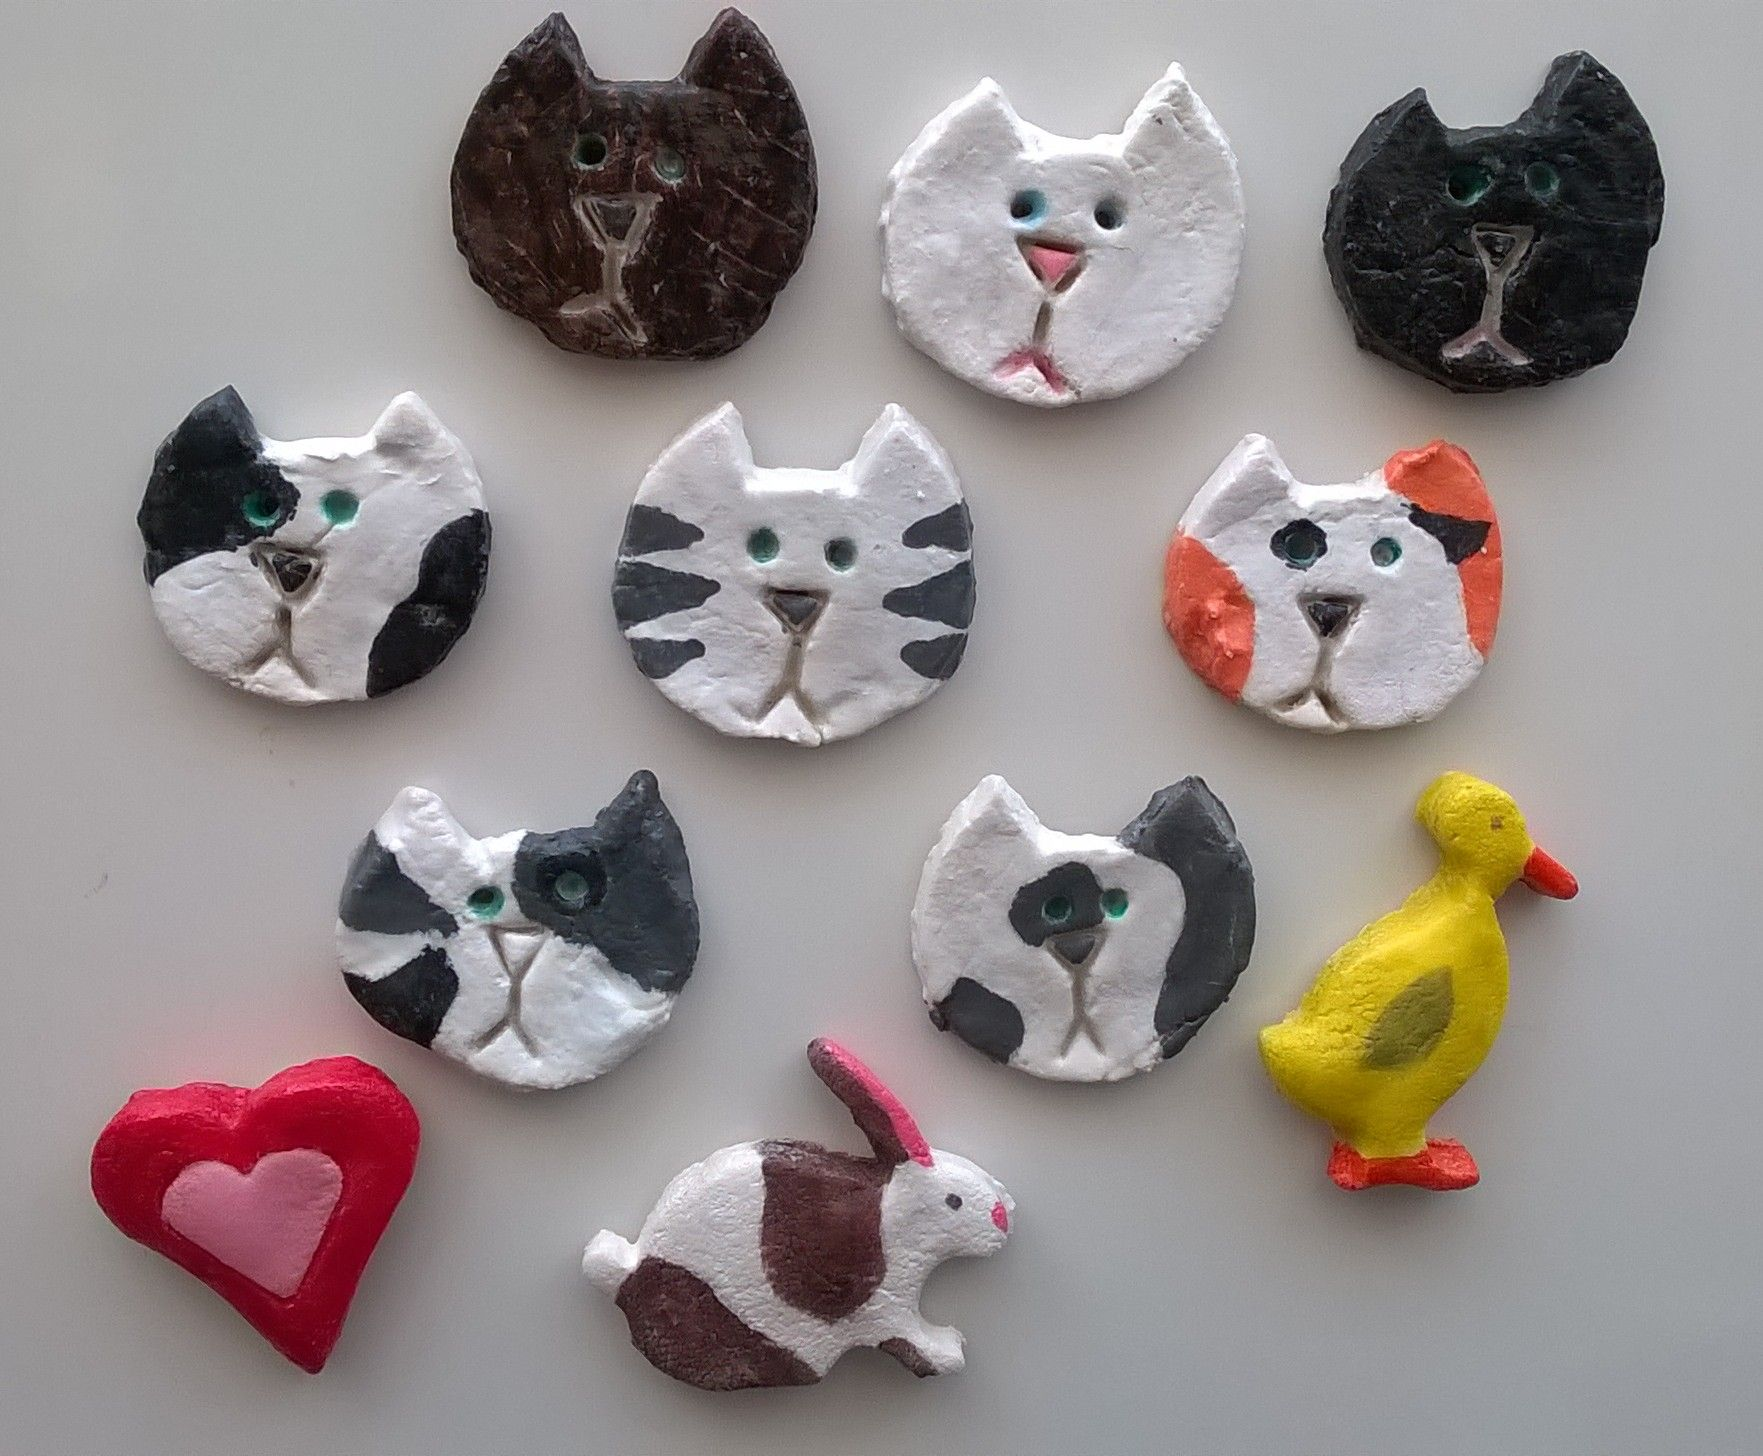 Salt Dough Fridge Magnets Cats Etc Homemade Ornaments Kids Easter Kids Kids Ornaments